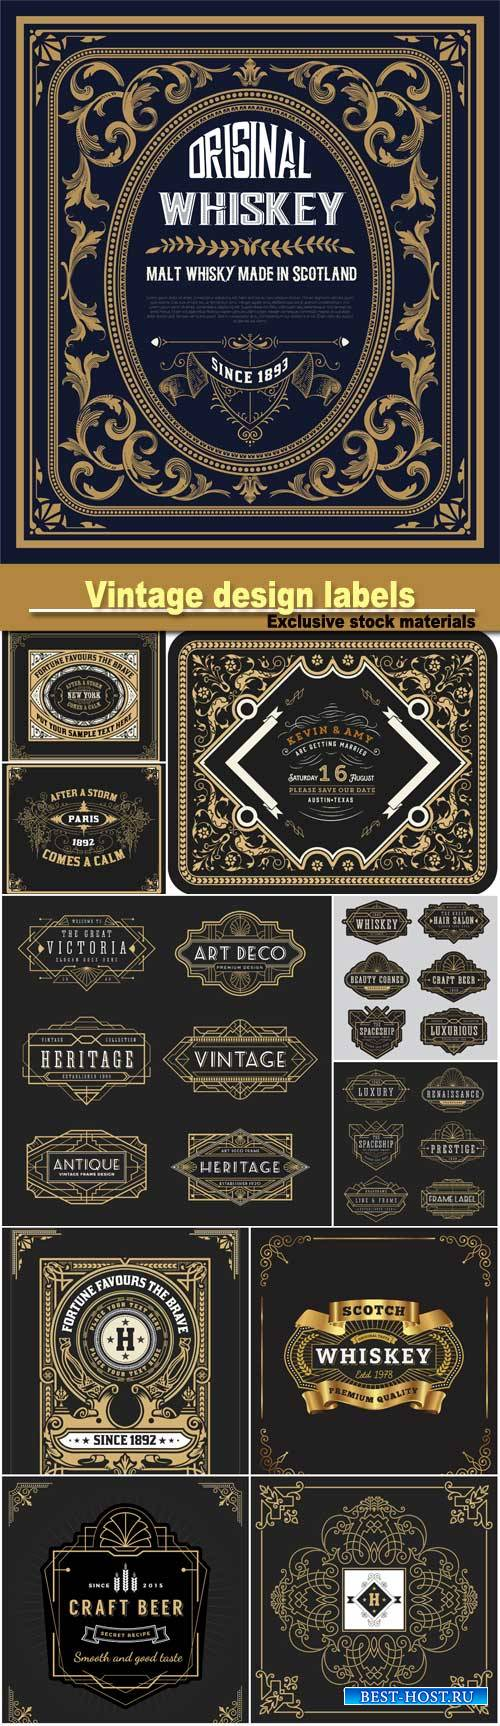 Vintage line design for labels, banner, logo, emblem, wedding card